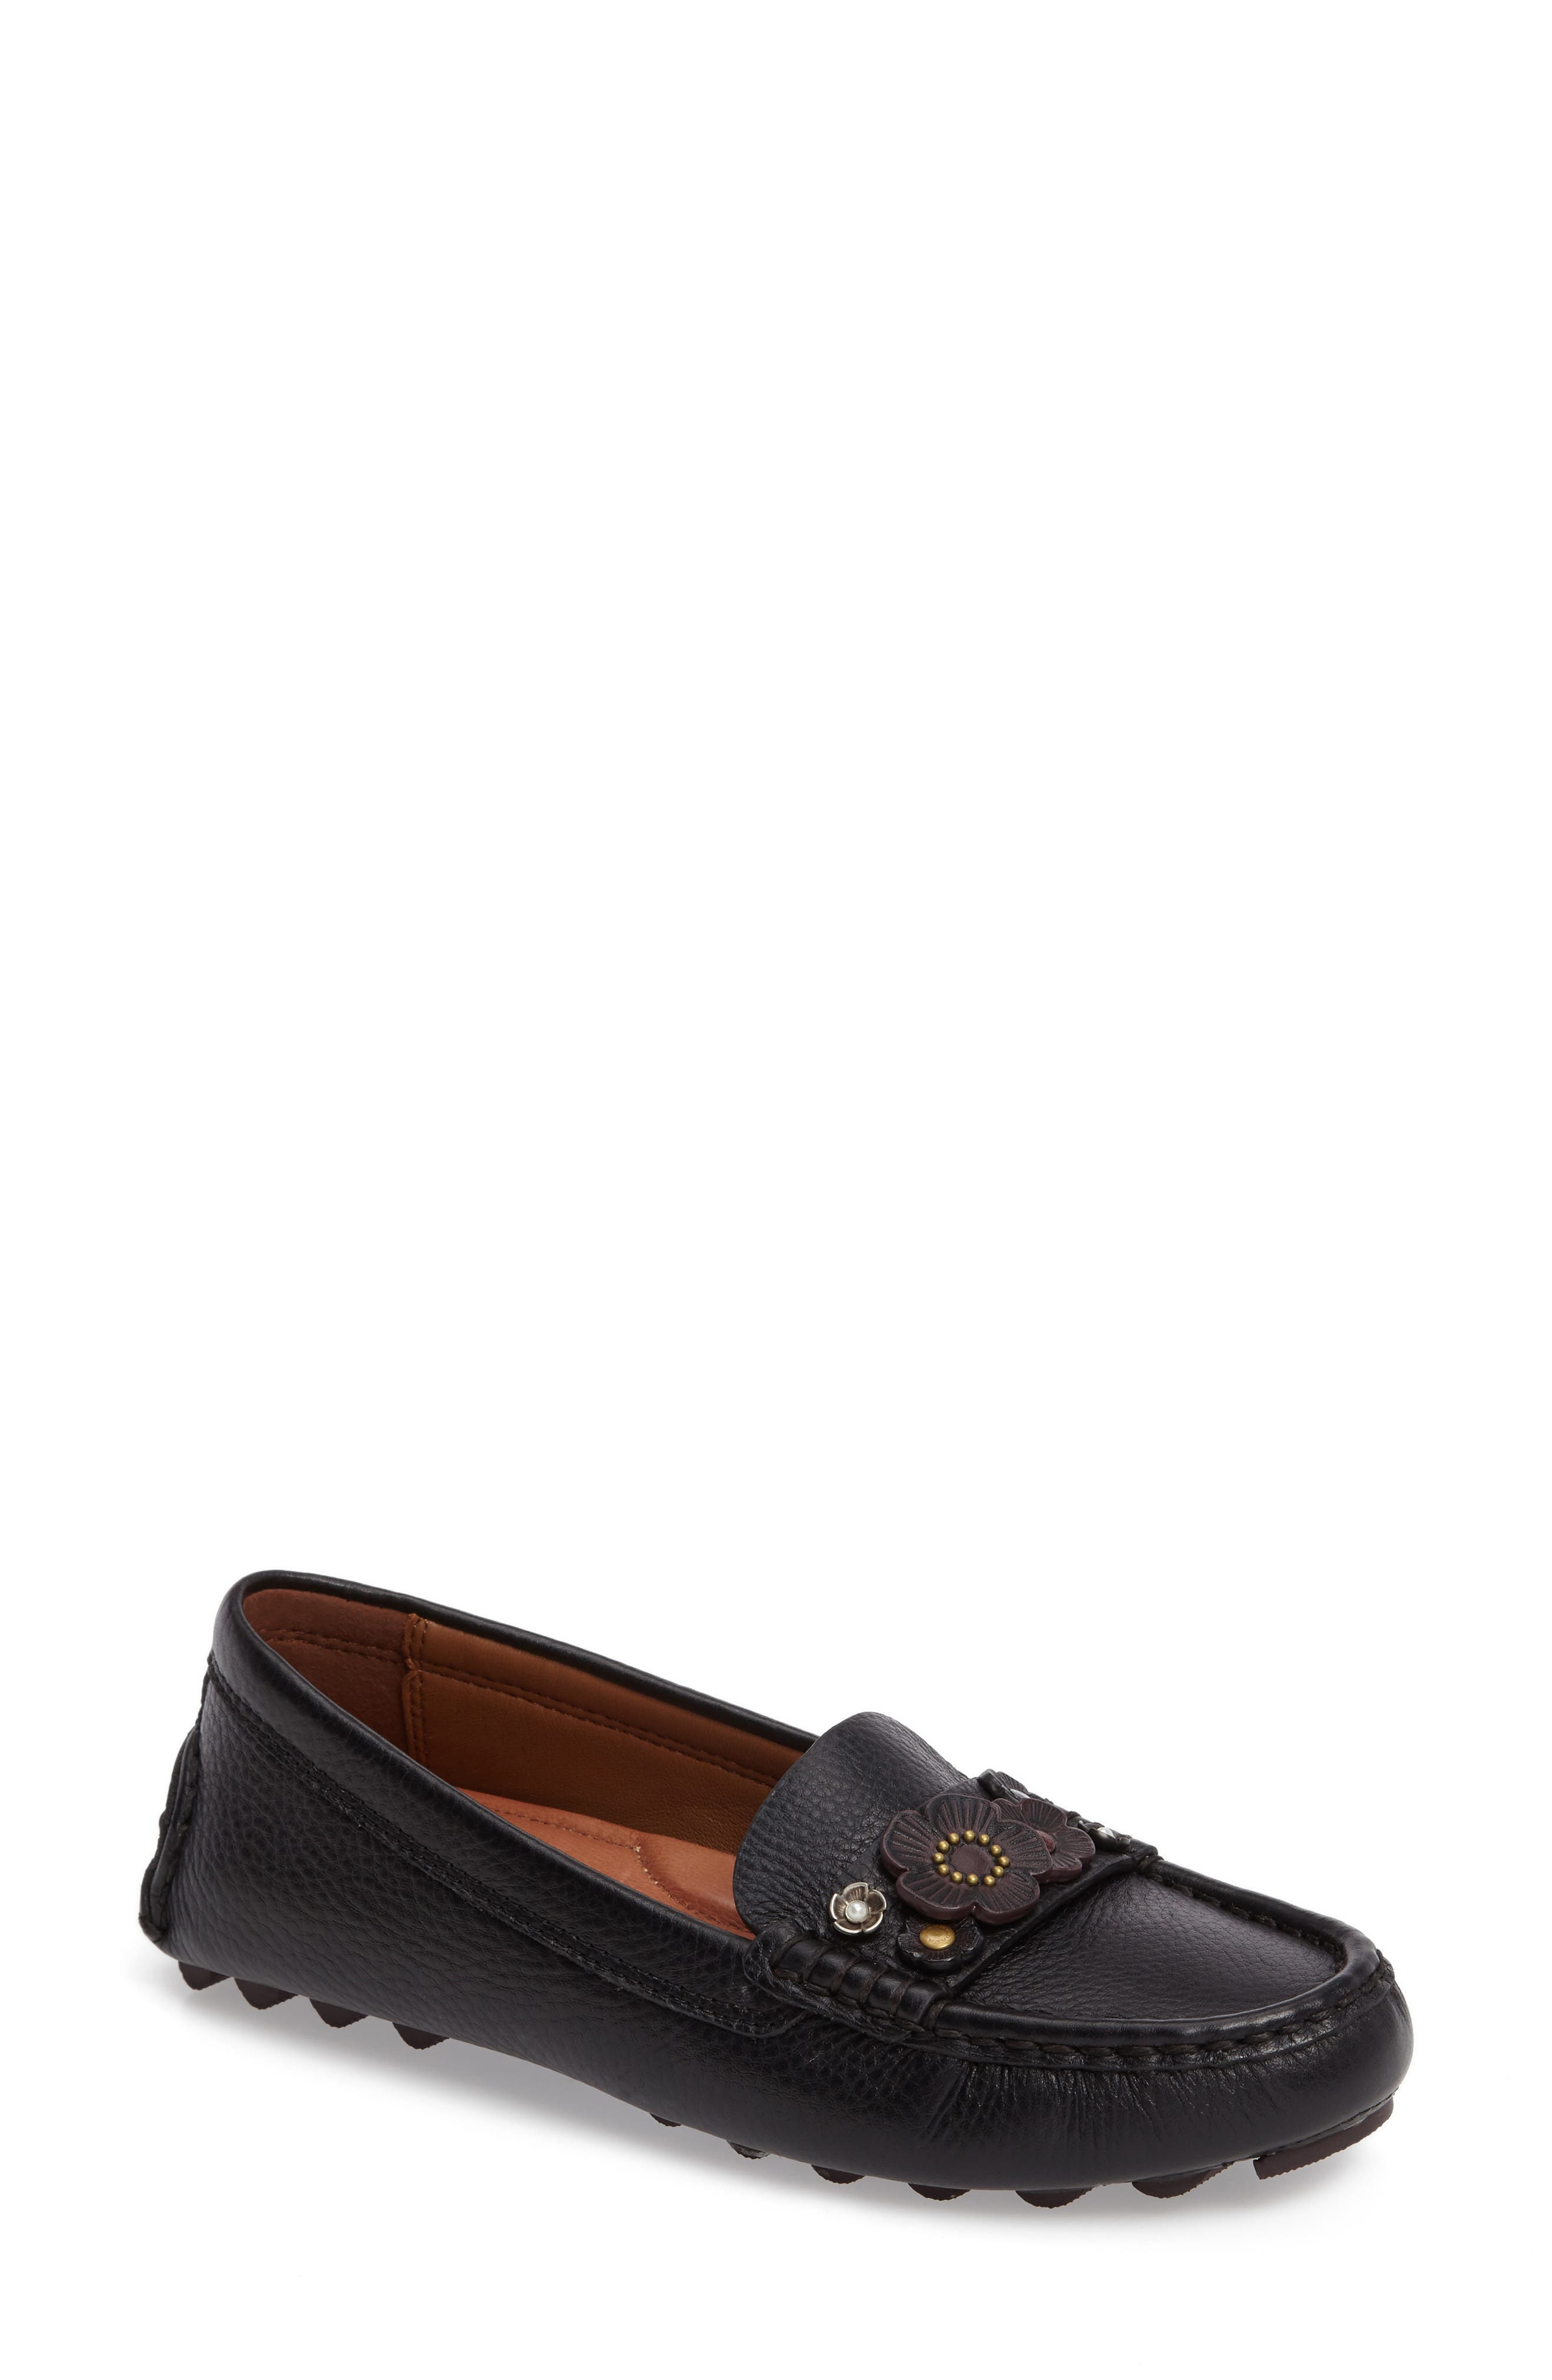 Main Image - COACH Floral Embellished Driving Loafer (Women)